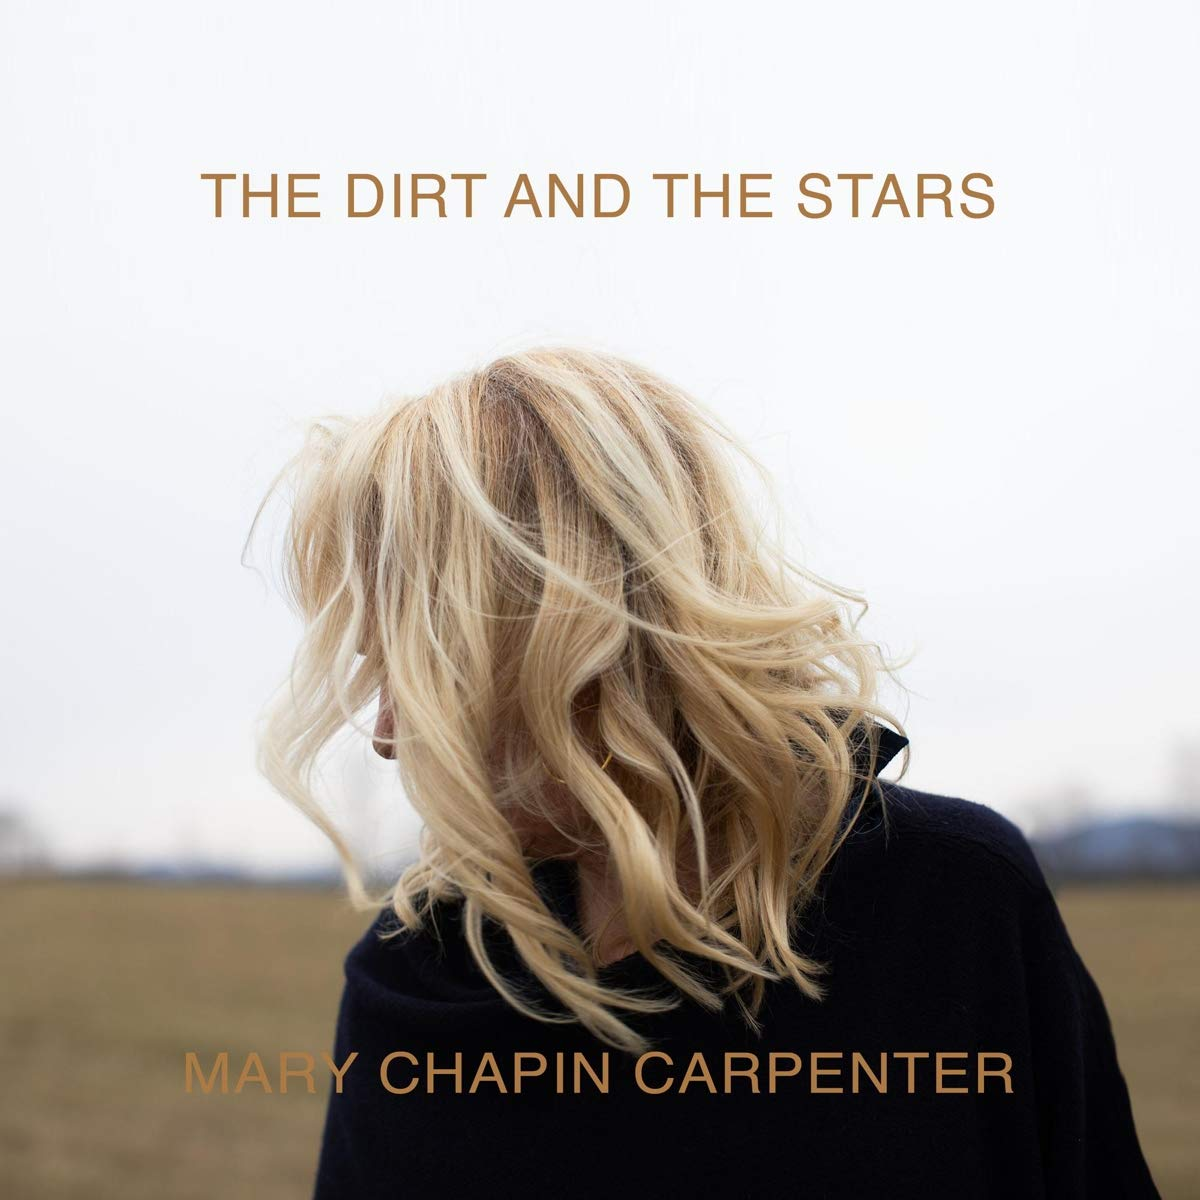 Mary Chapin Carpenter - The Dirt And The Stars - Amazon.com Music